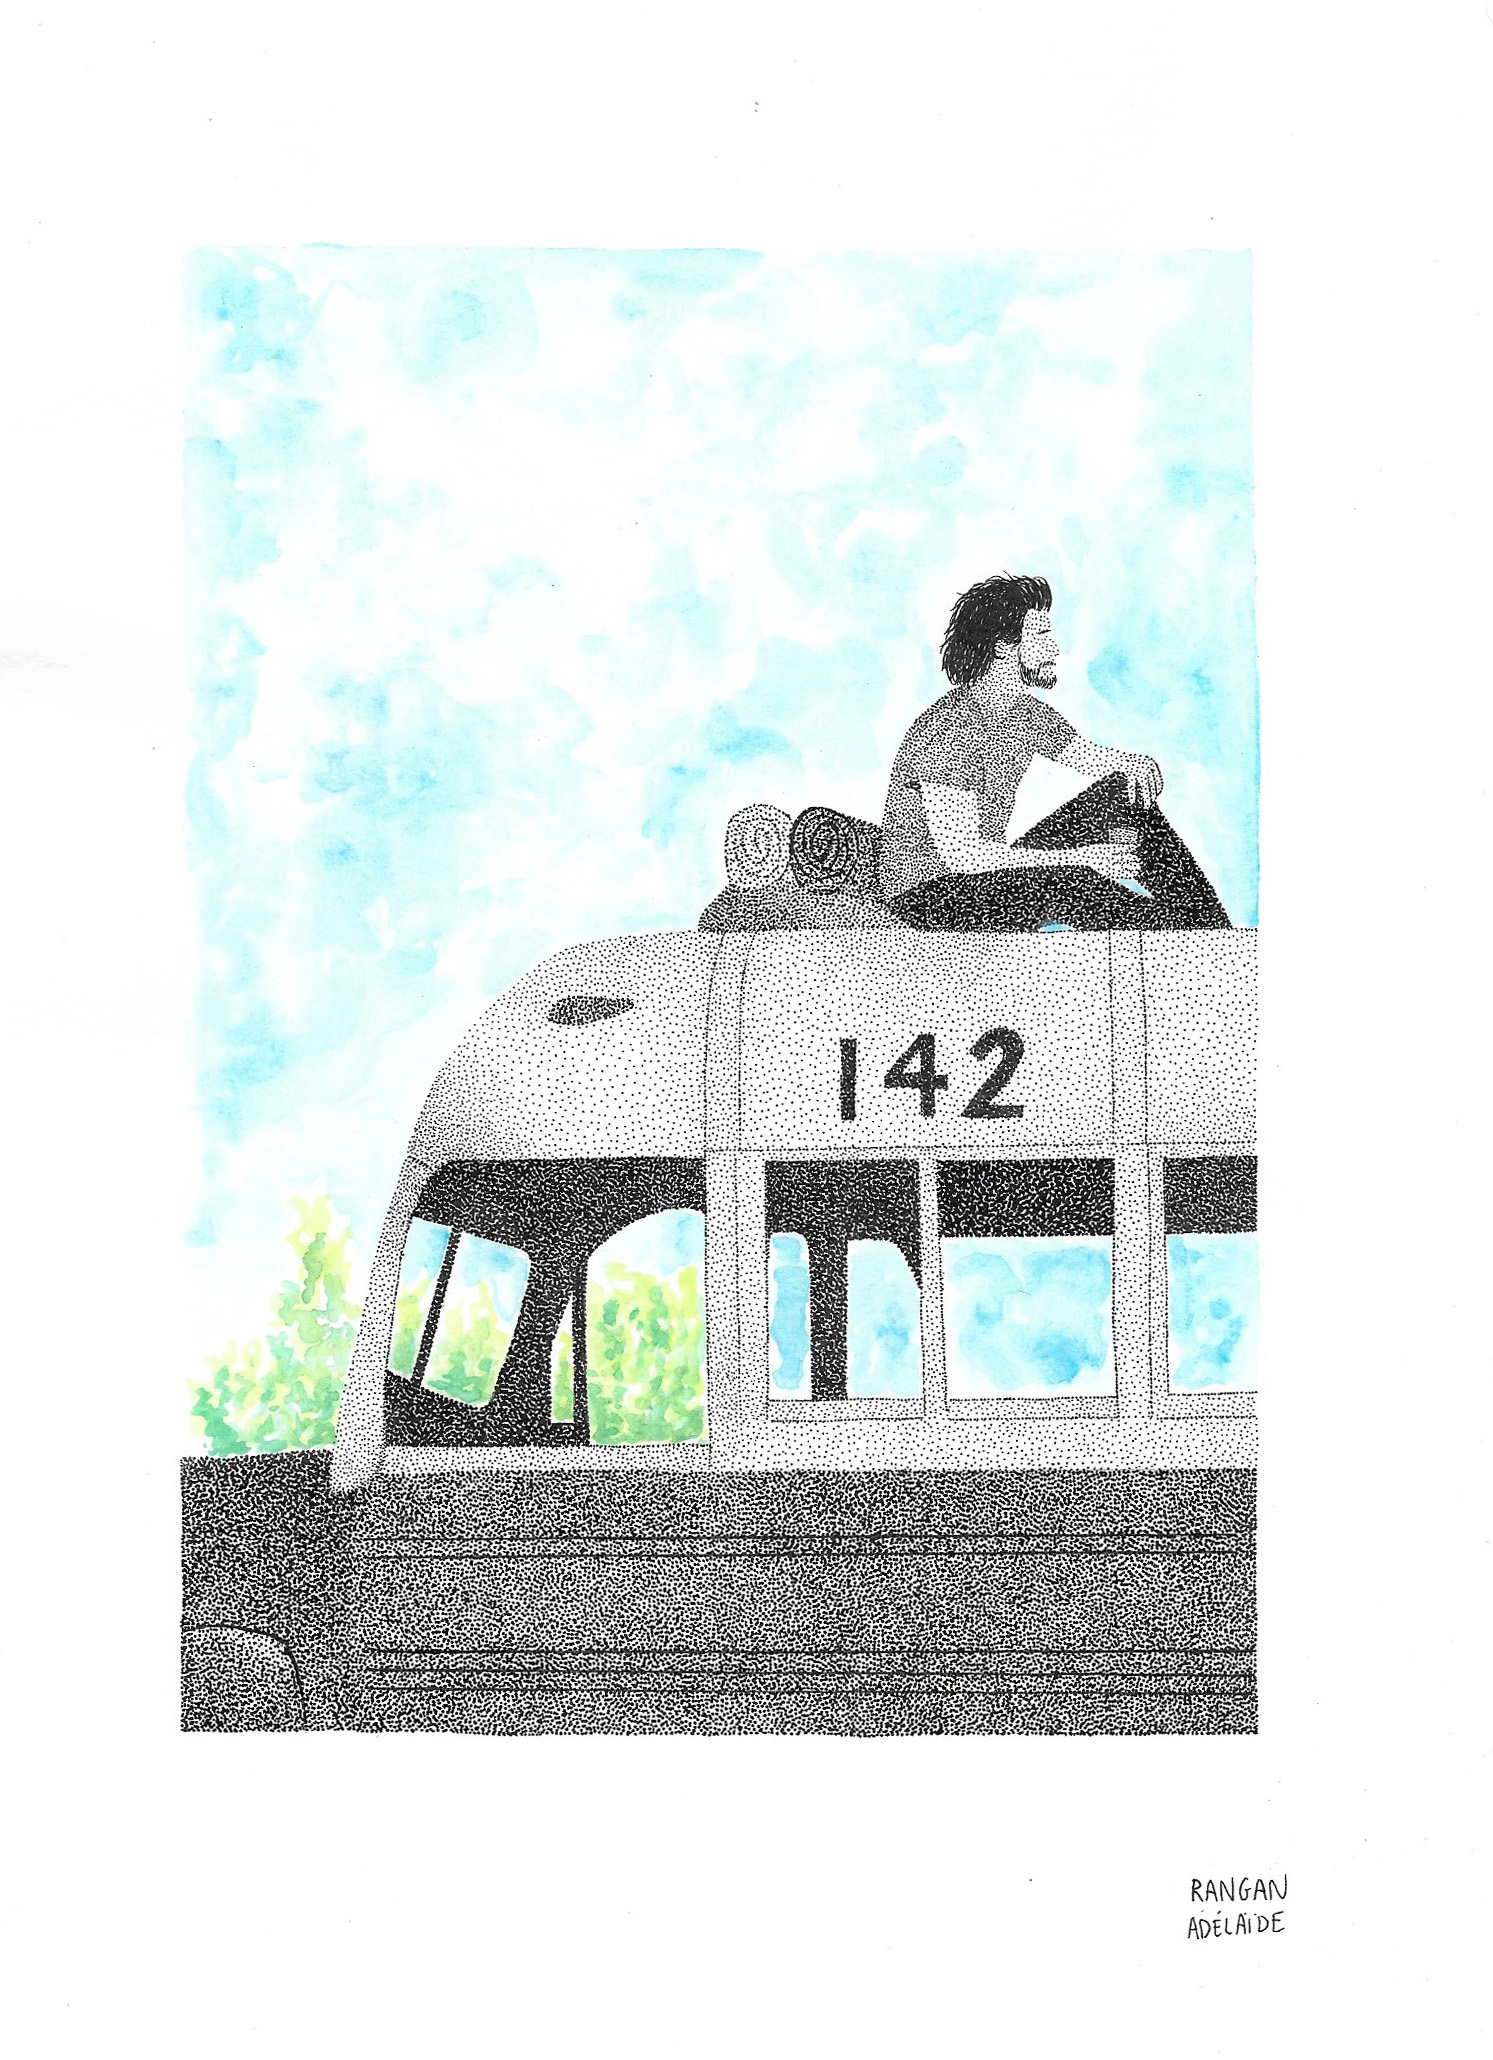 Rangan Adélaïde's Mixed Medium Artwork of ChristopherMcCandless & Bus 142